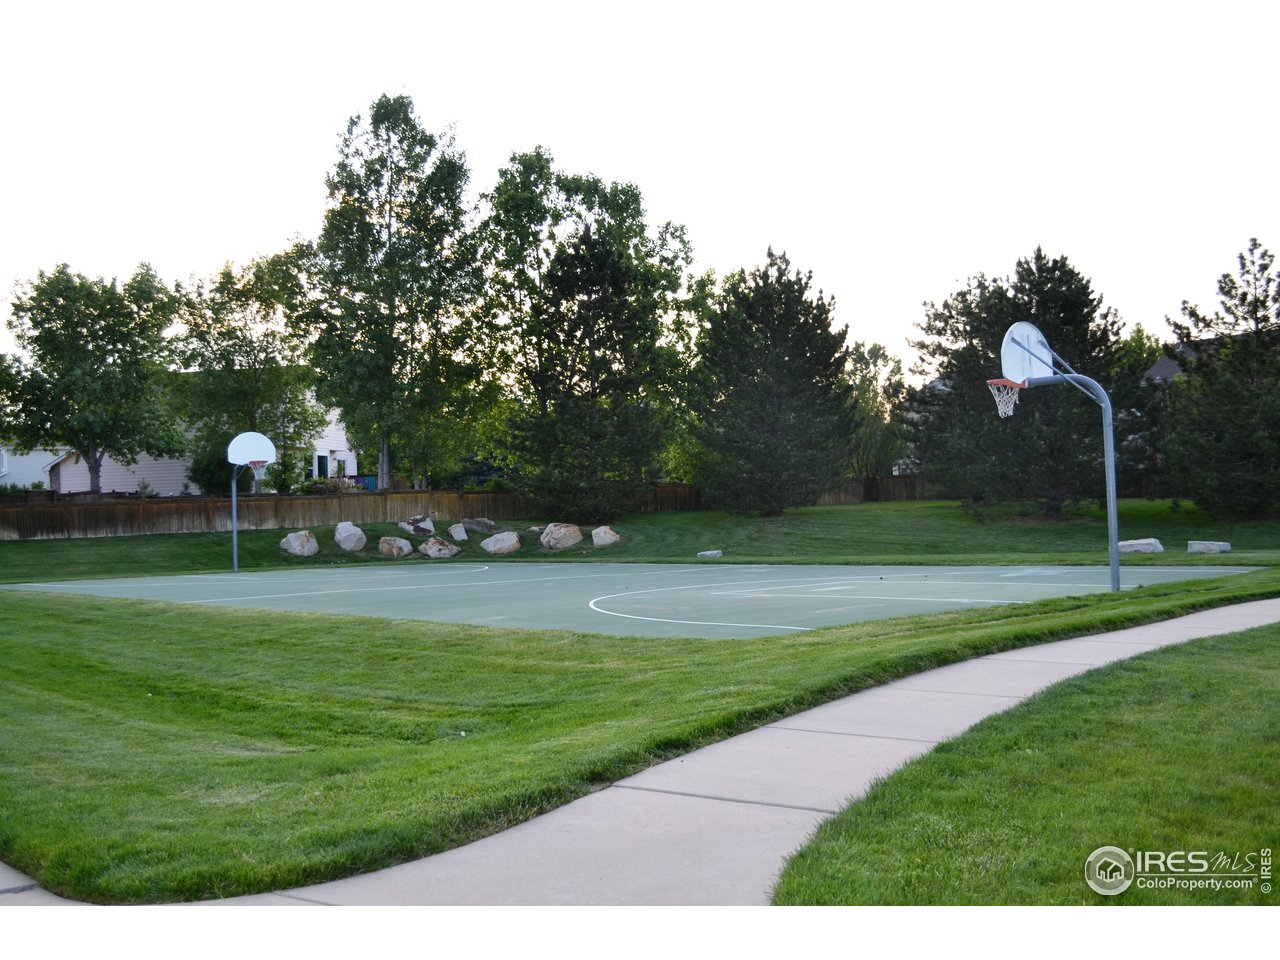 Fossil Creek Park basketball courts